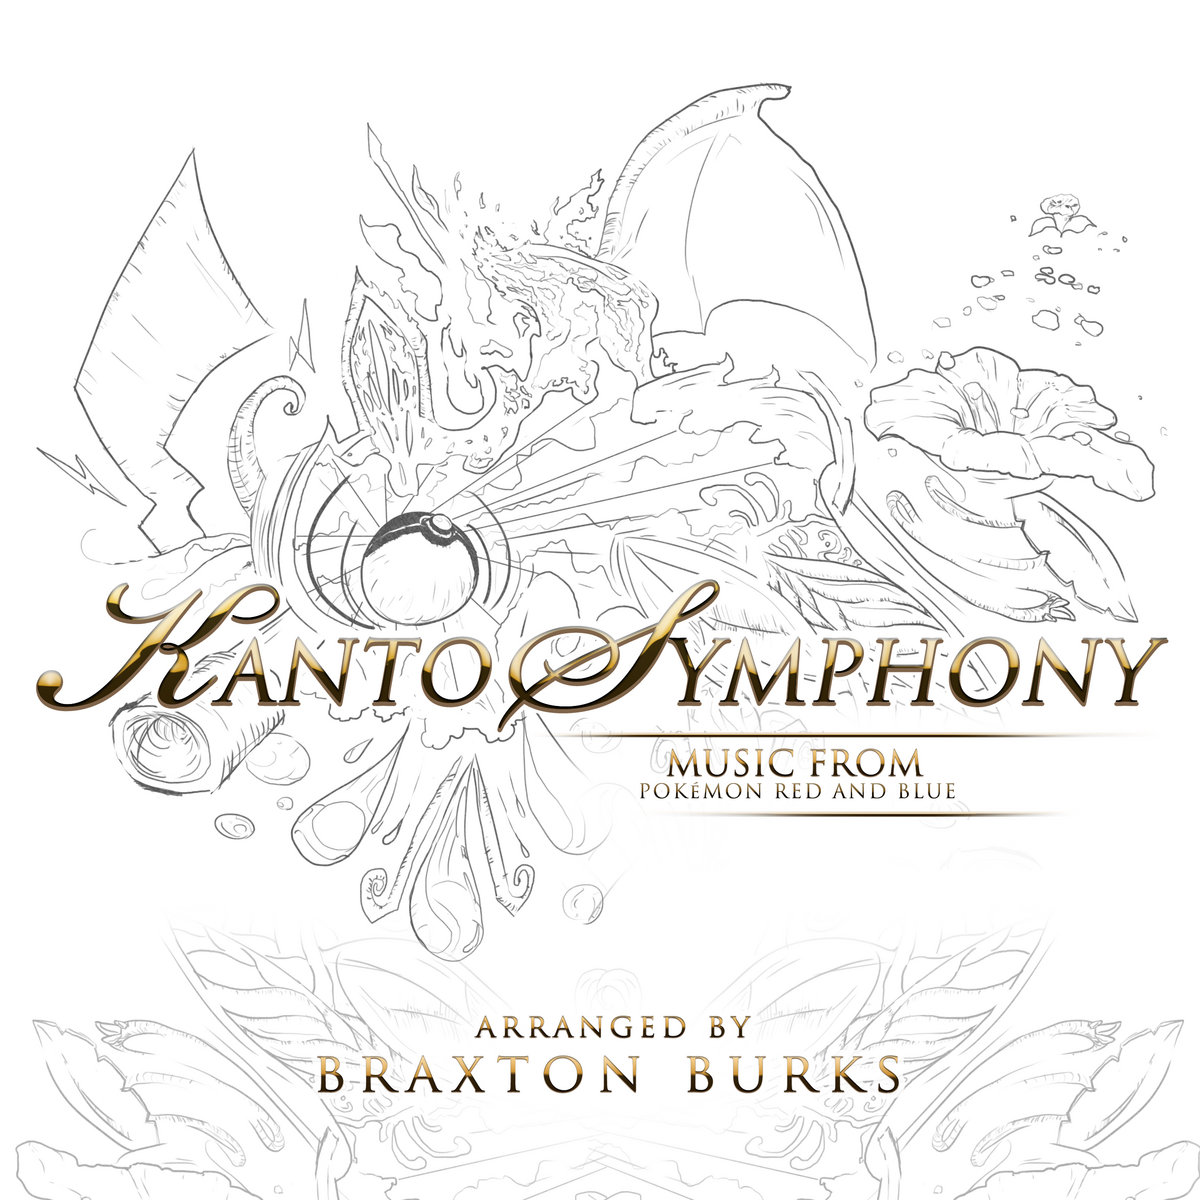 Kanto Symphony (Music from